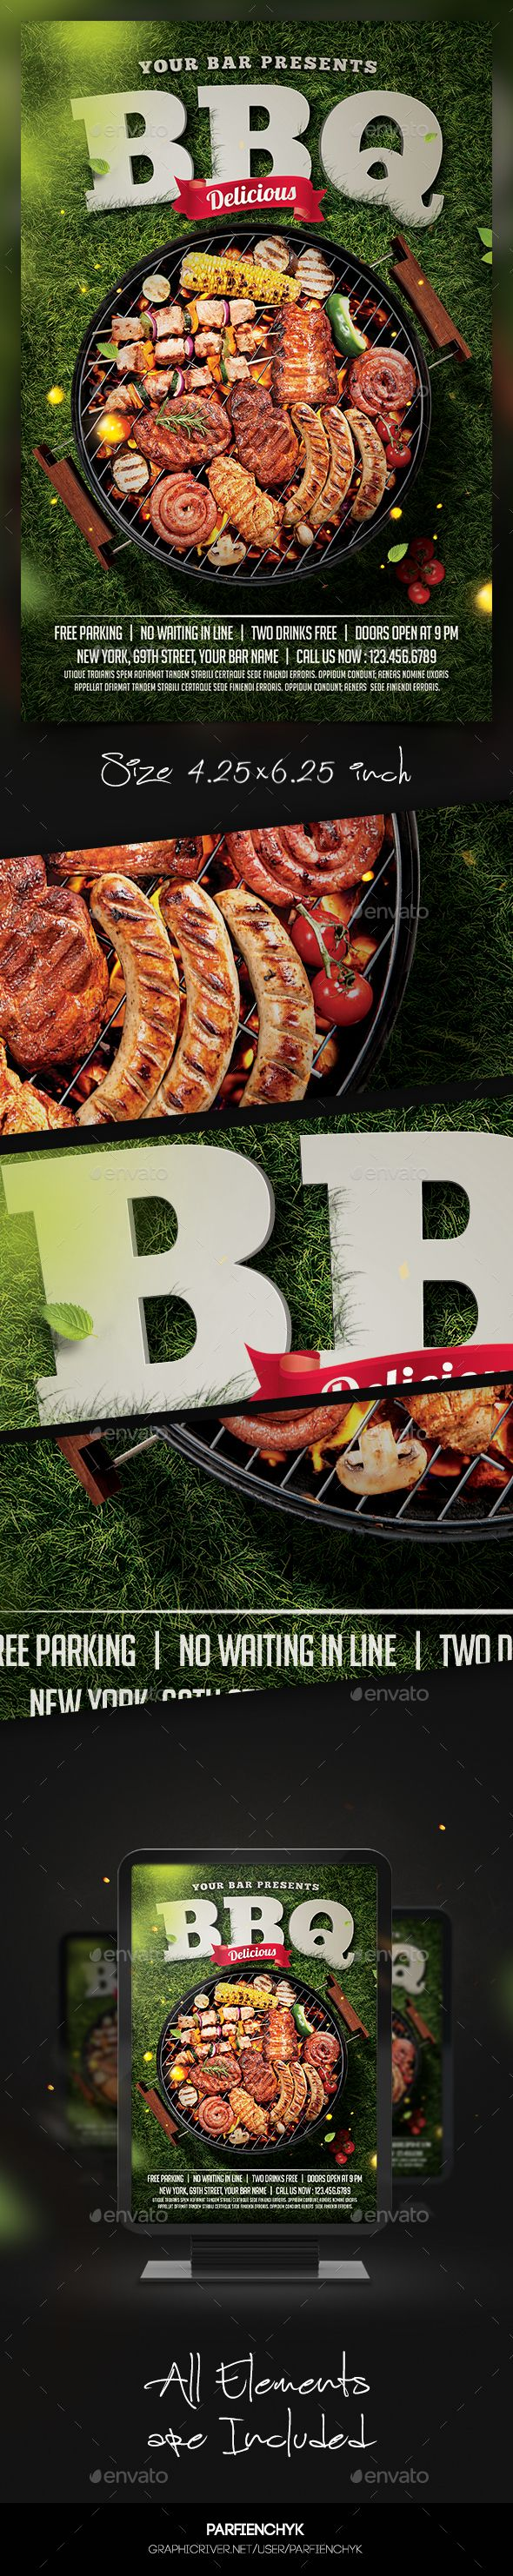 Barbecue Bbq Party Flyer Template  Party Flyer Flyer Template